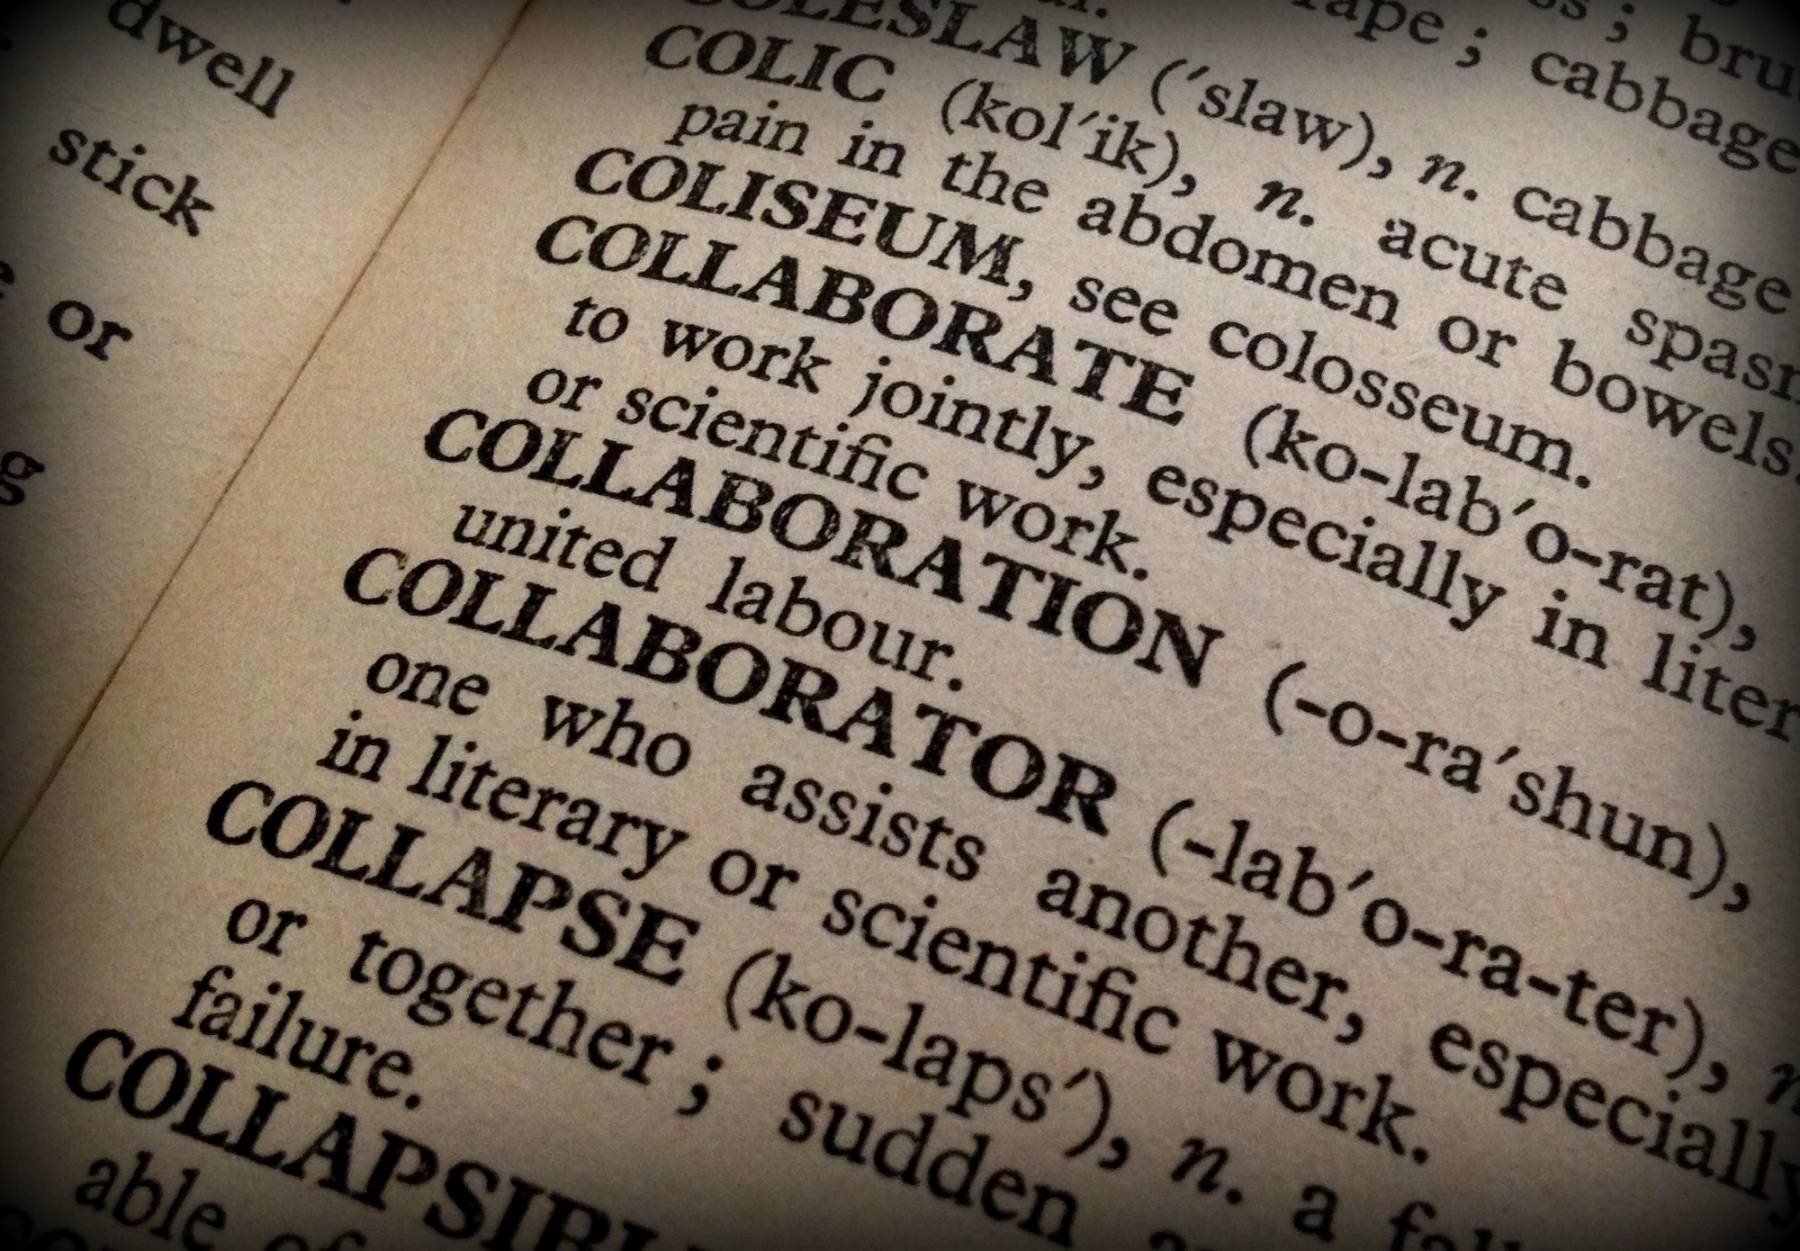 Collaboration definition